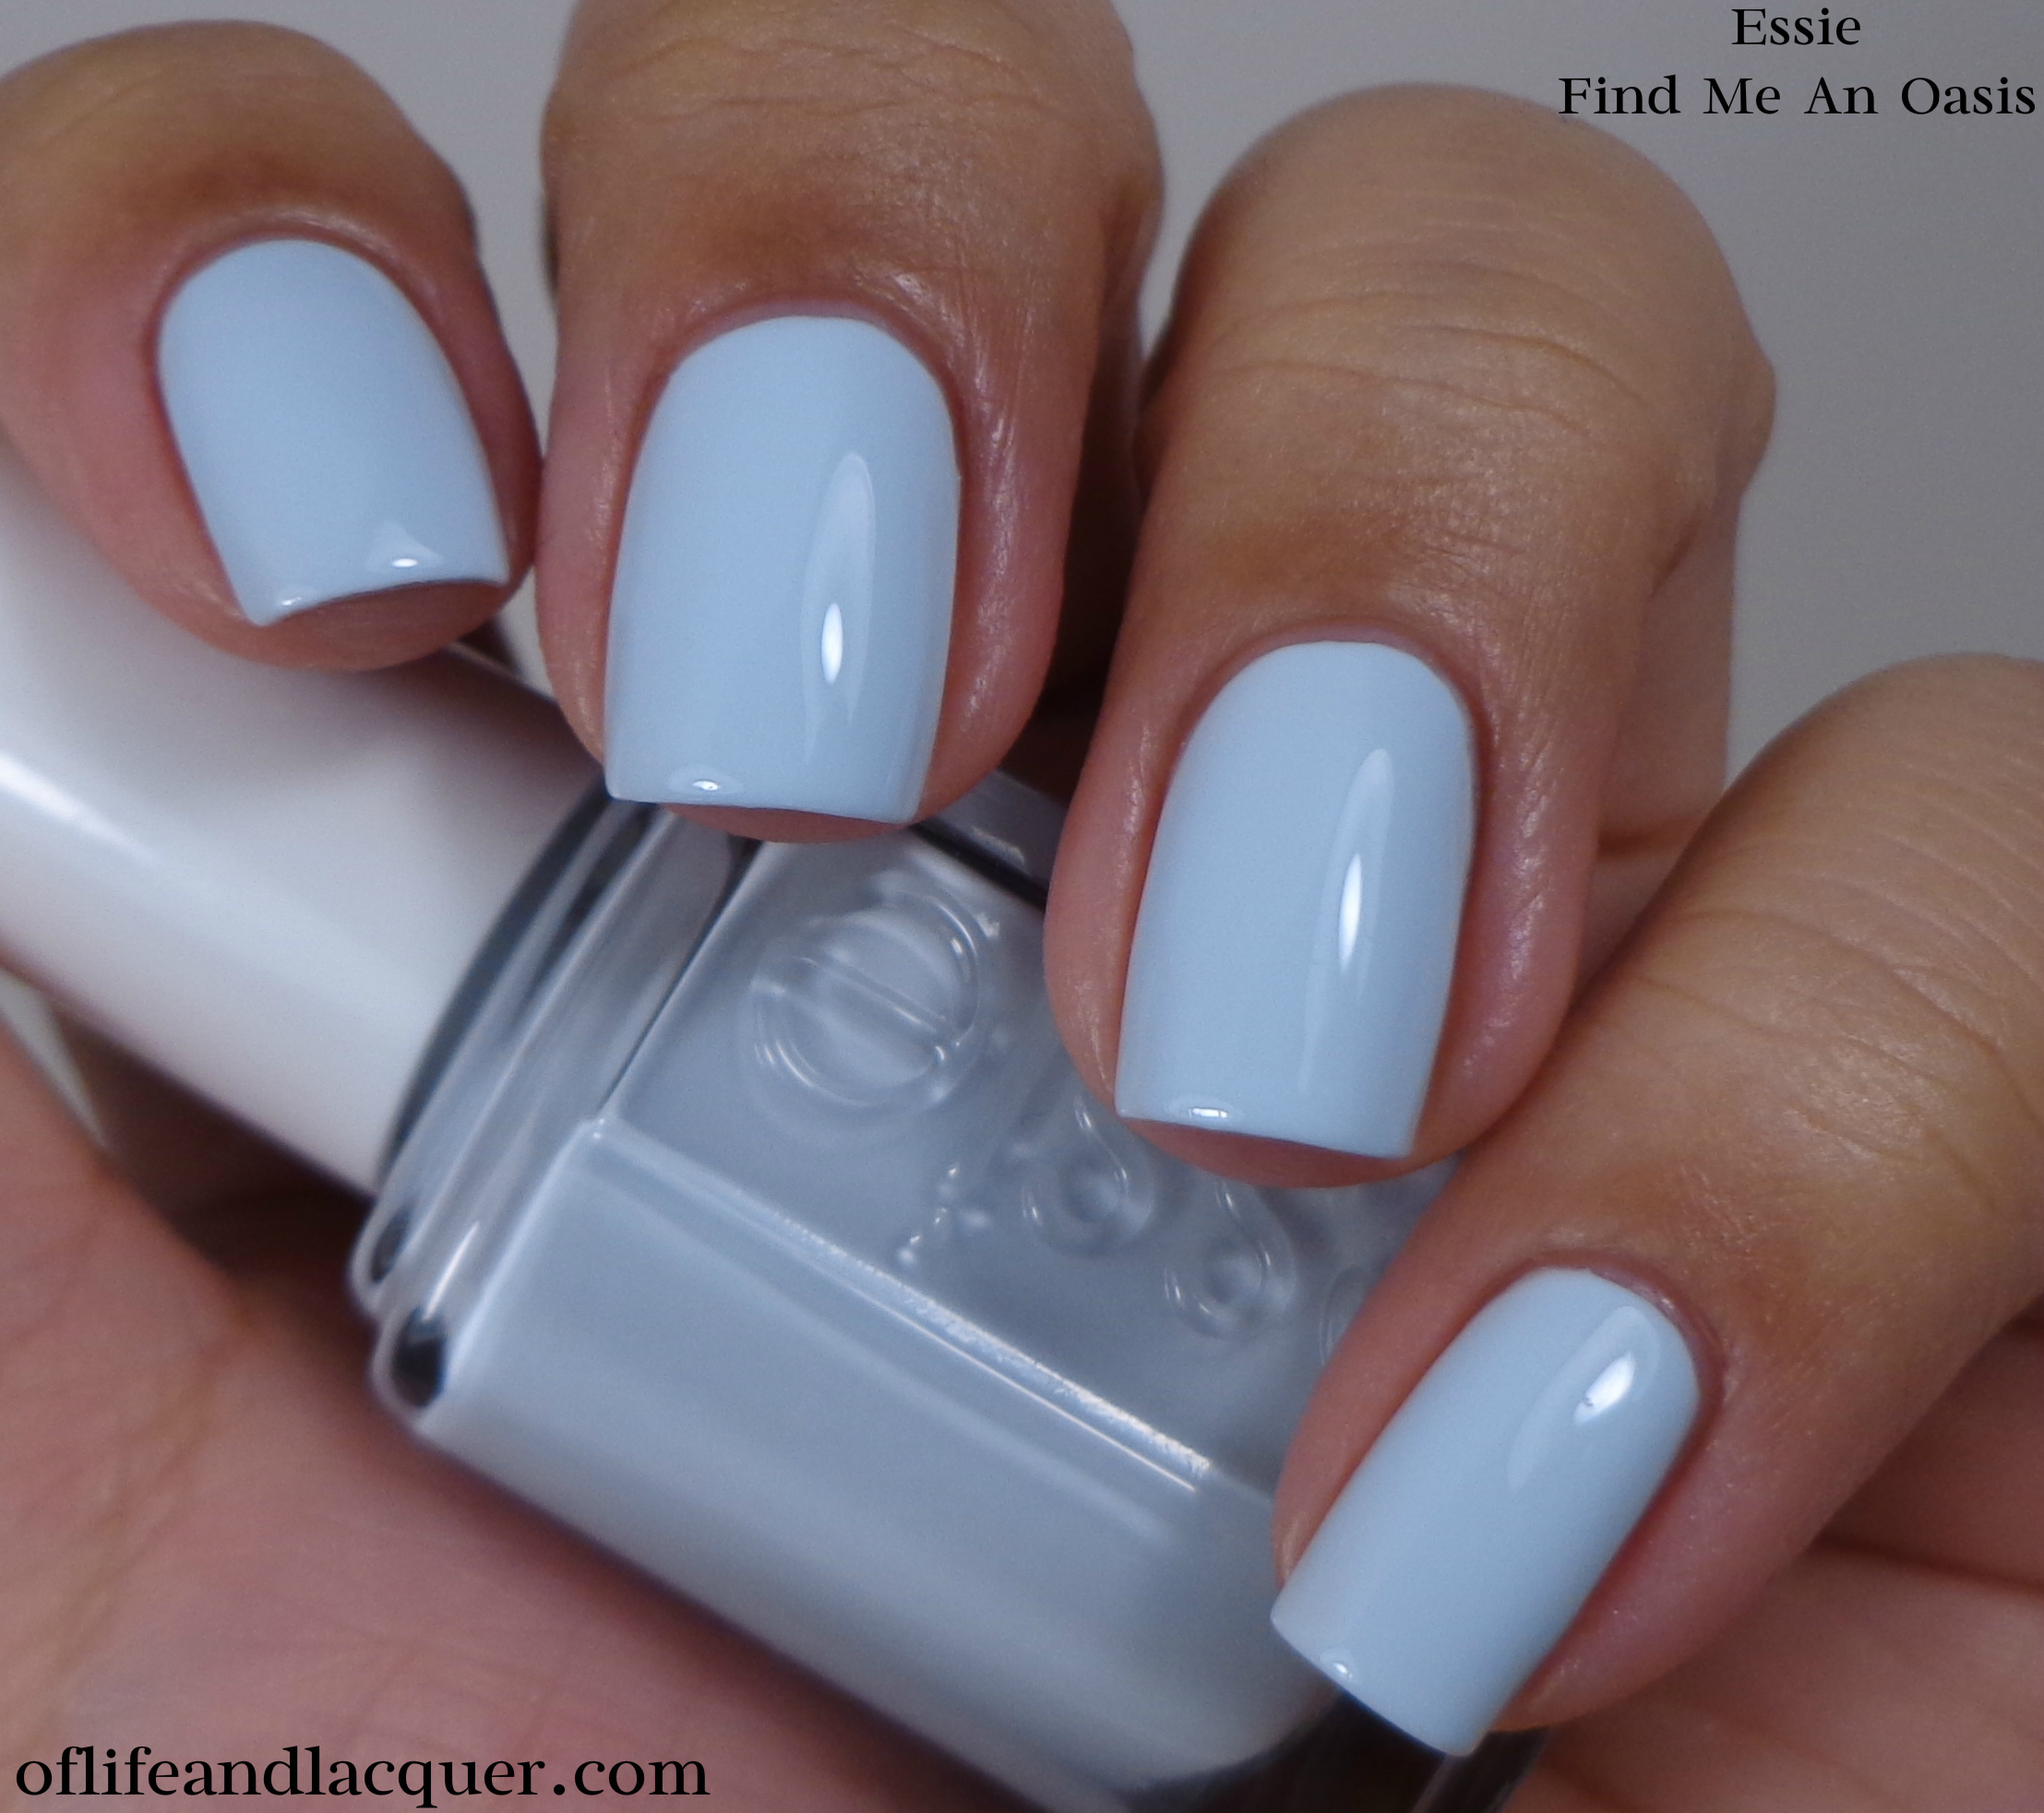 Essie Resort Fling Collection 2014 - Of Life and Lacquer